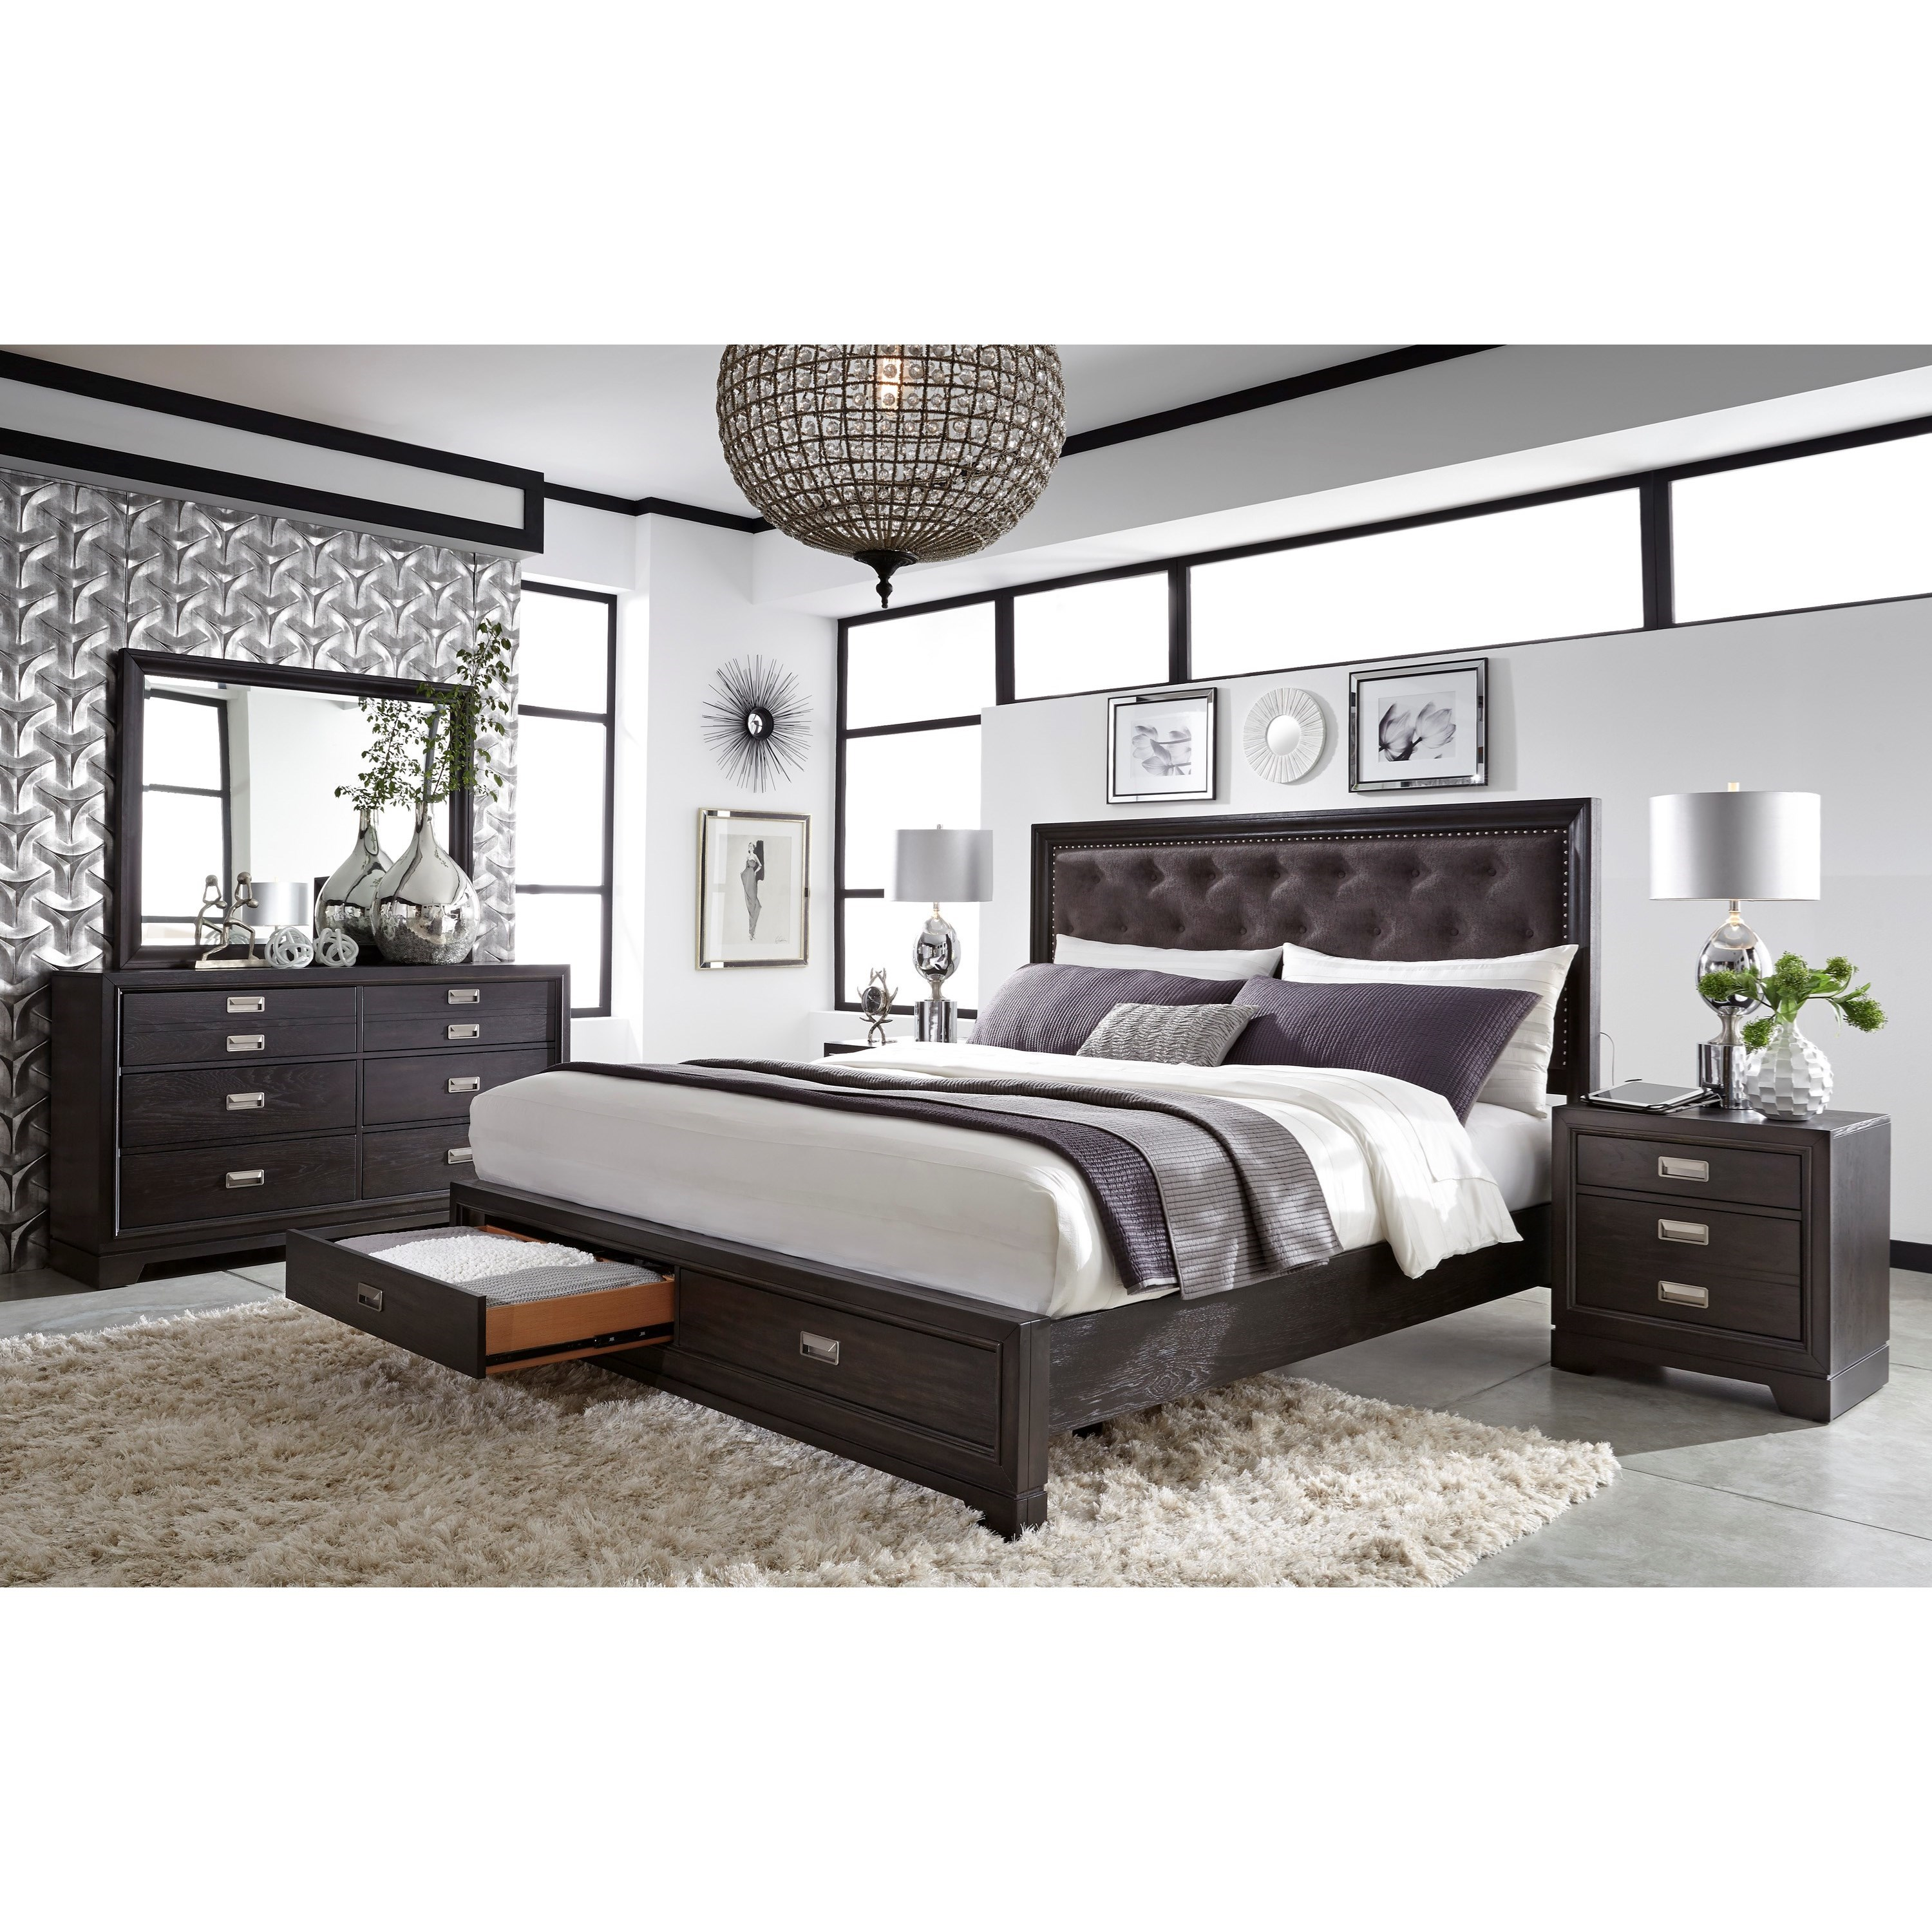 Front Street Queen Bedroom Group by Aspenhome at Walker's Furniture